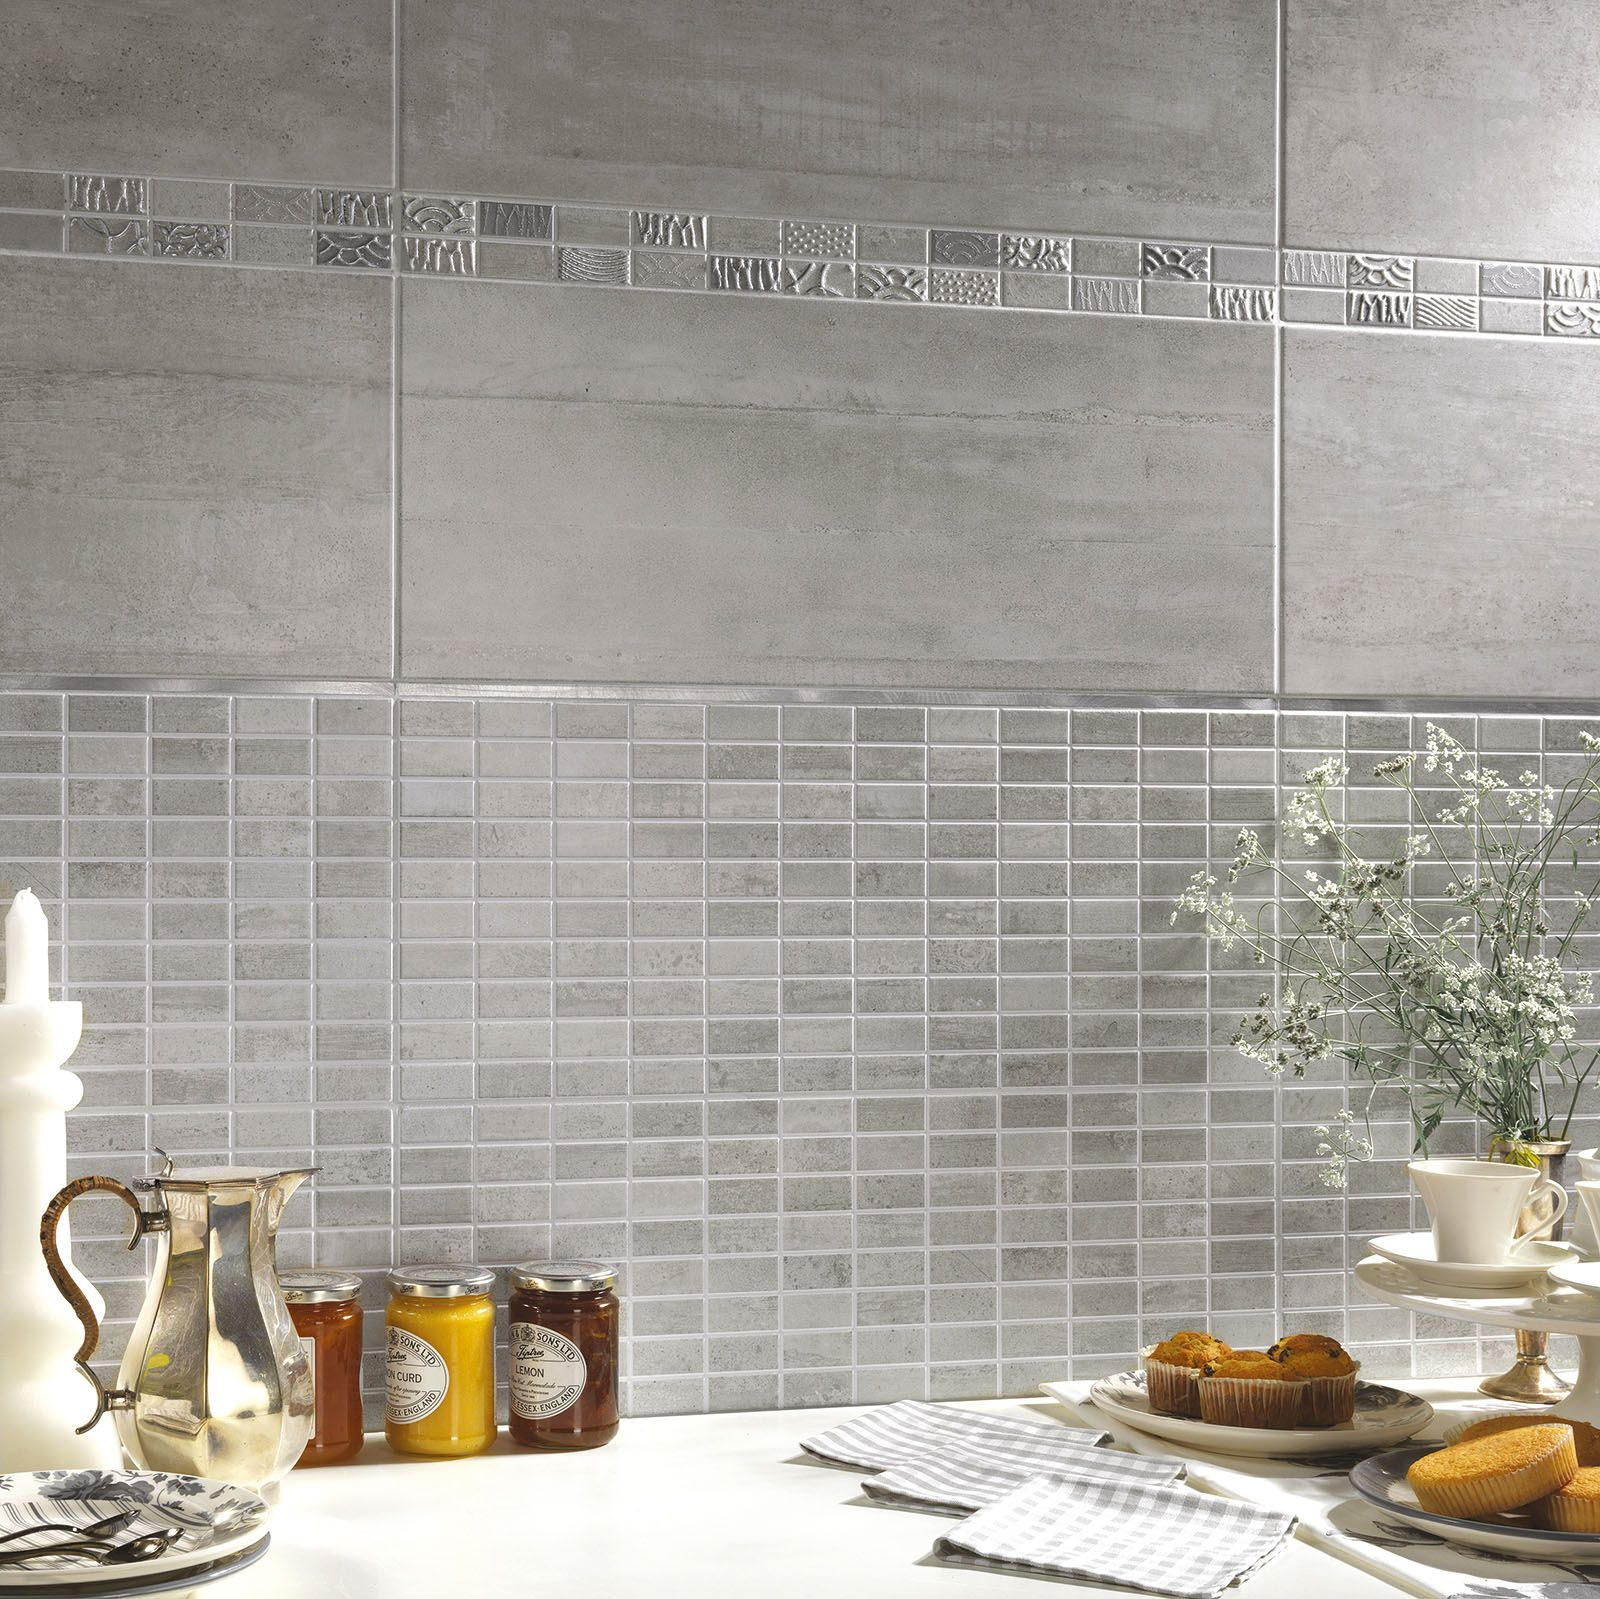 Kitchen herberia urban walltile grey 25x60 mix mosaic grey and listel aluminium cucina - Mosaico rivestimento cucina ...